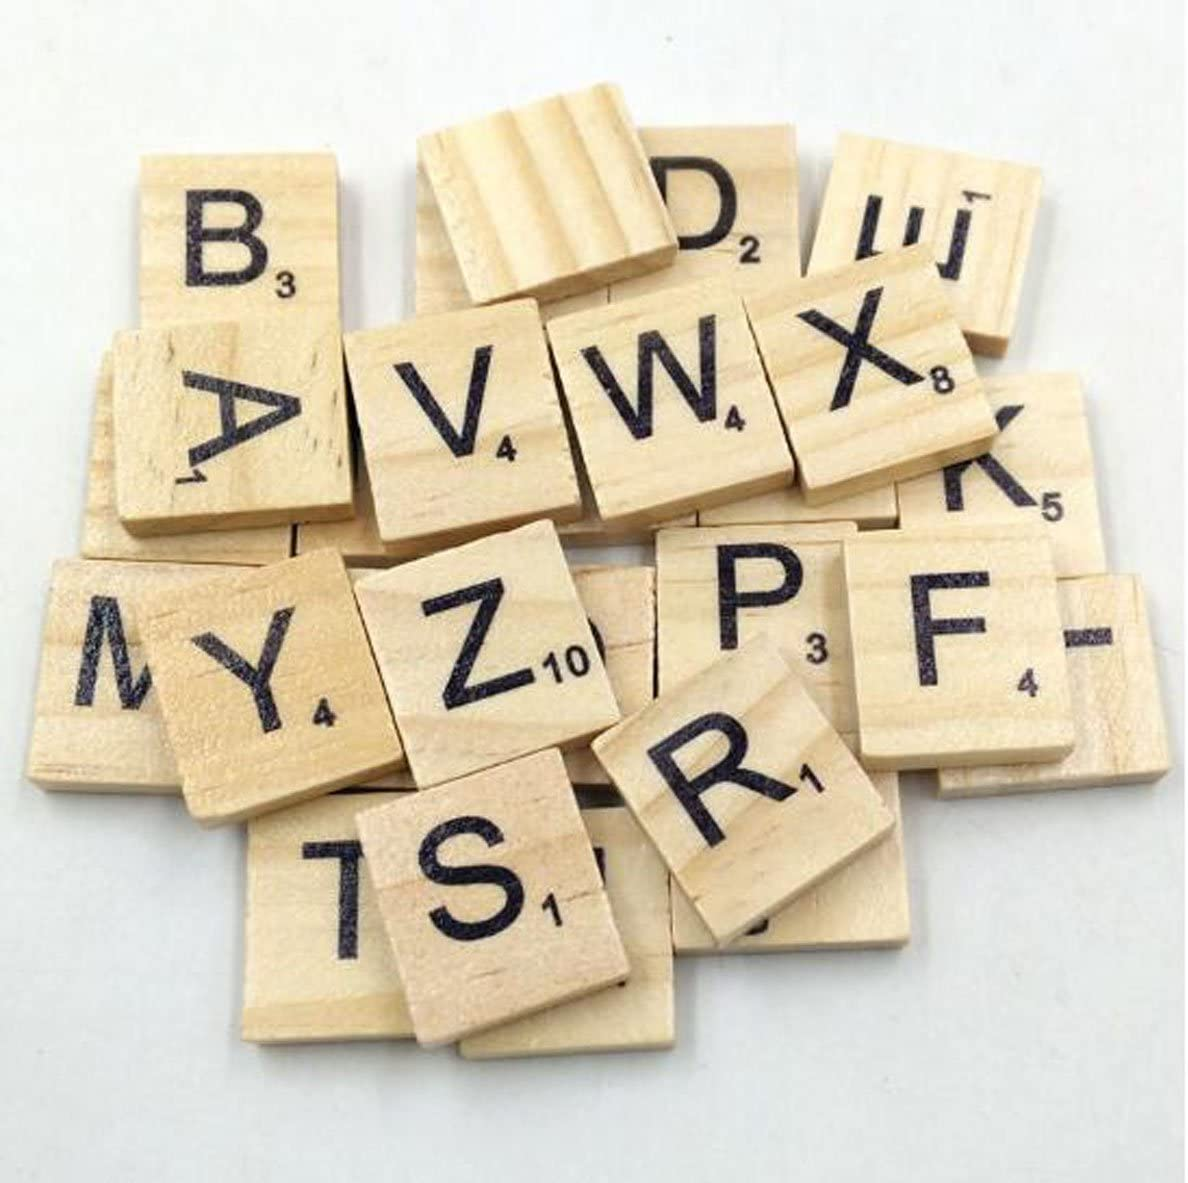 20x18x5mm//Pc 100 Pieces Wooden Scrabble Letters Word Tiles DIY Spelling Learn Letters Crafts Scrapbooking Pendants